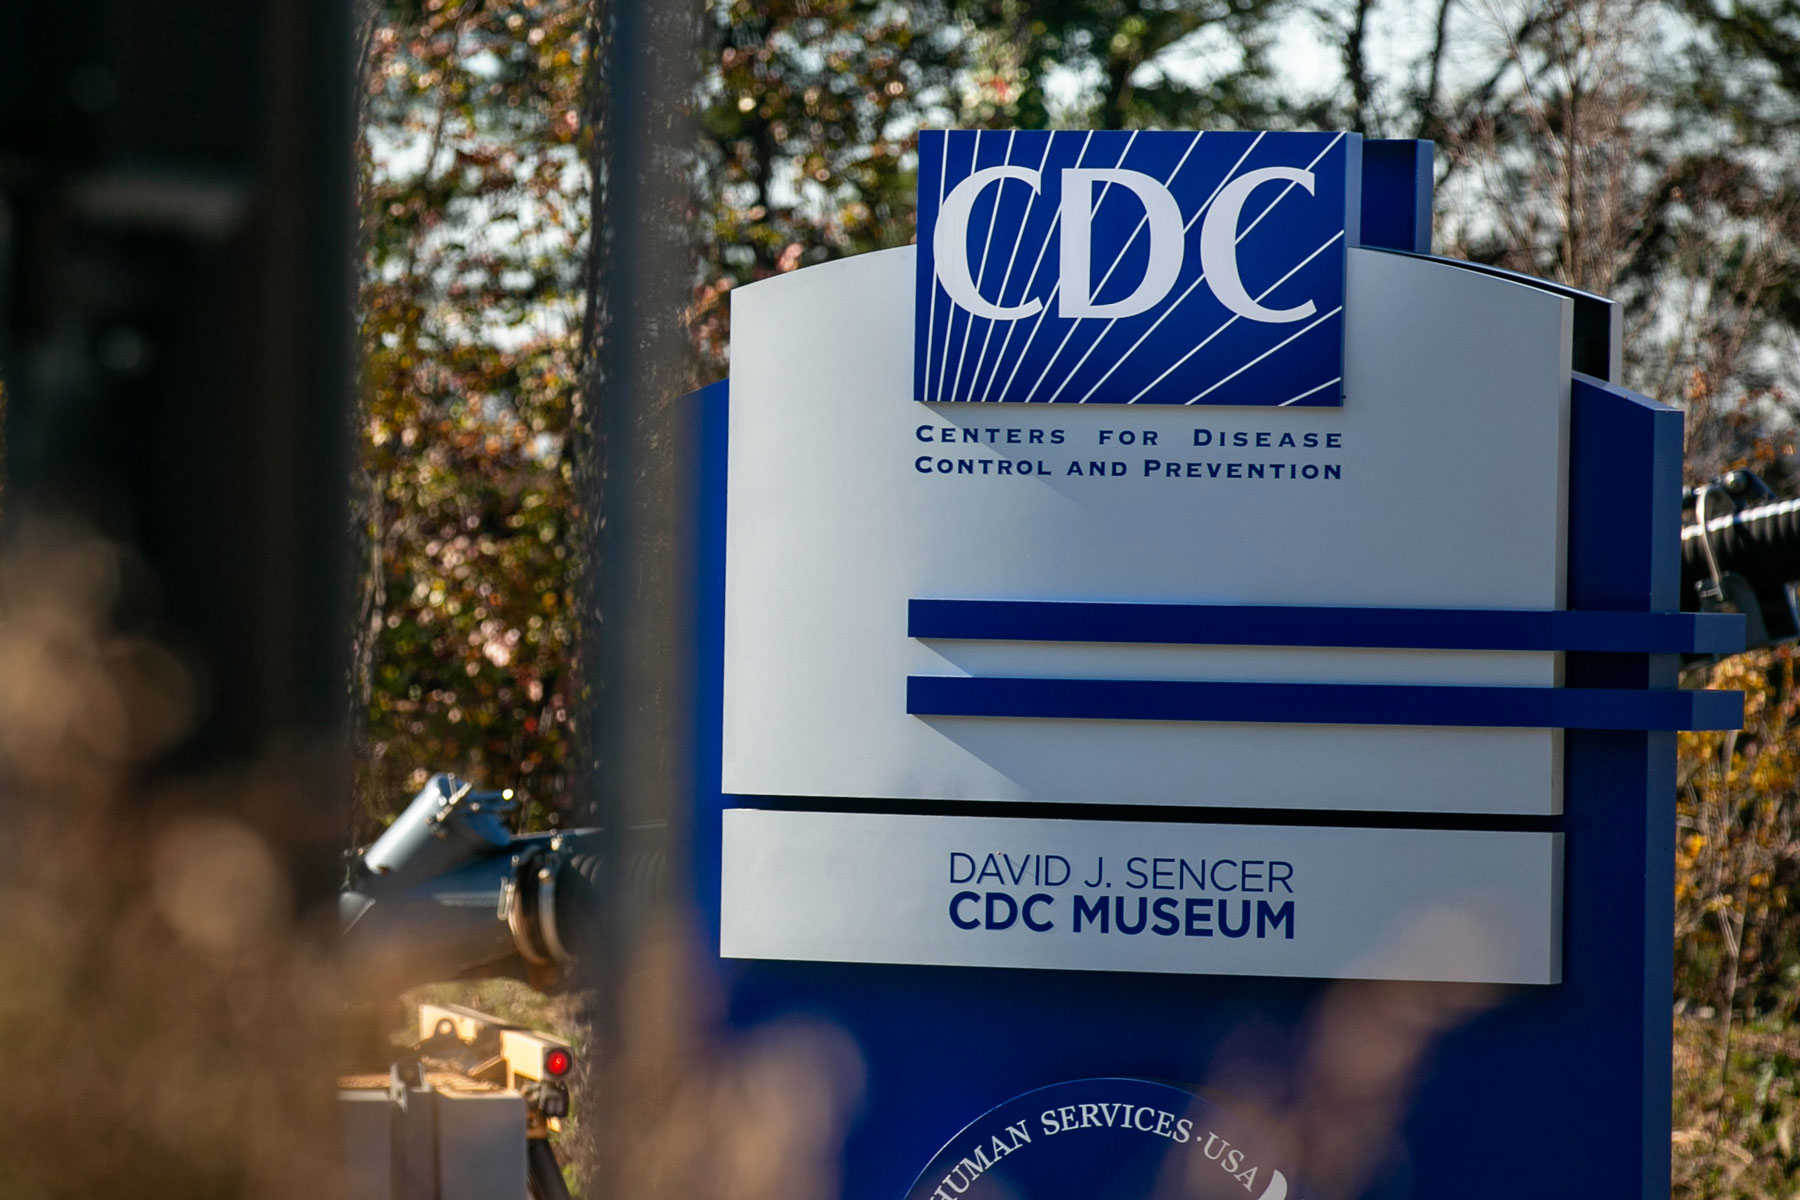 Centers for Disease Control and Prevention in Atlanta